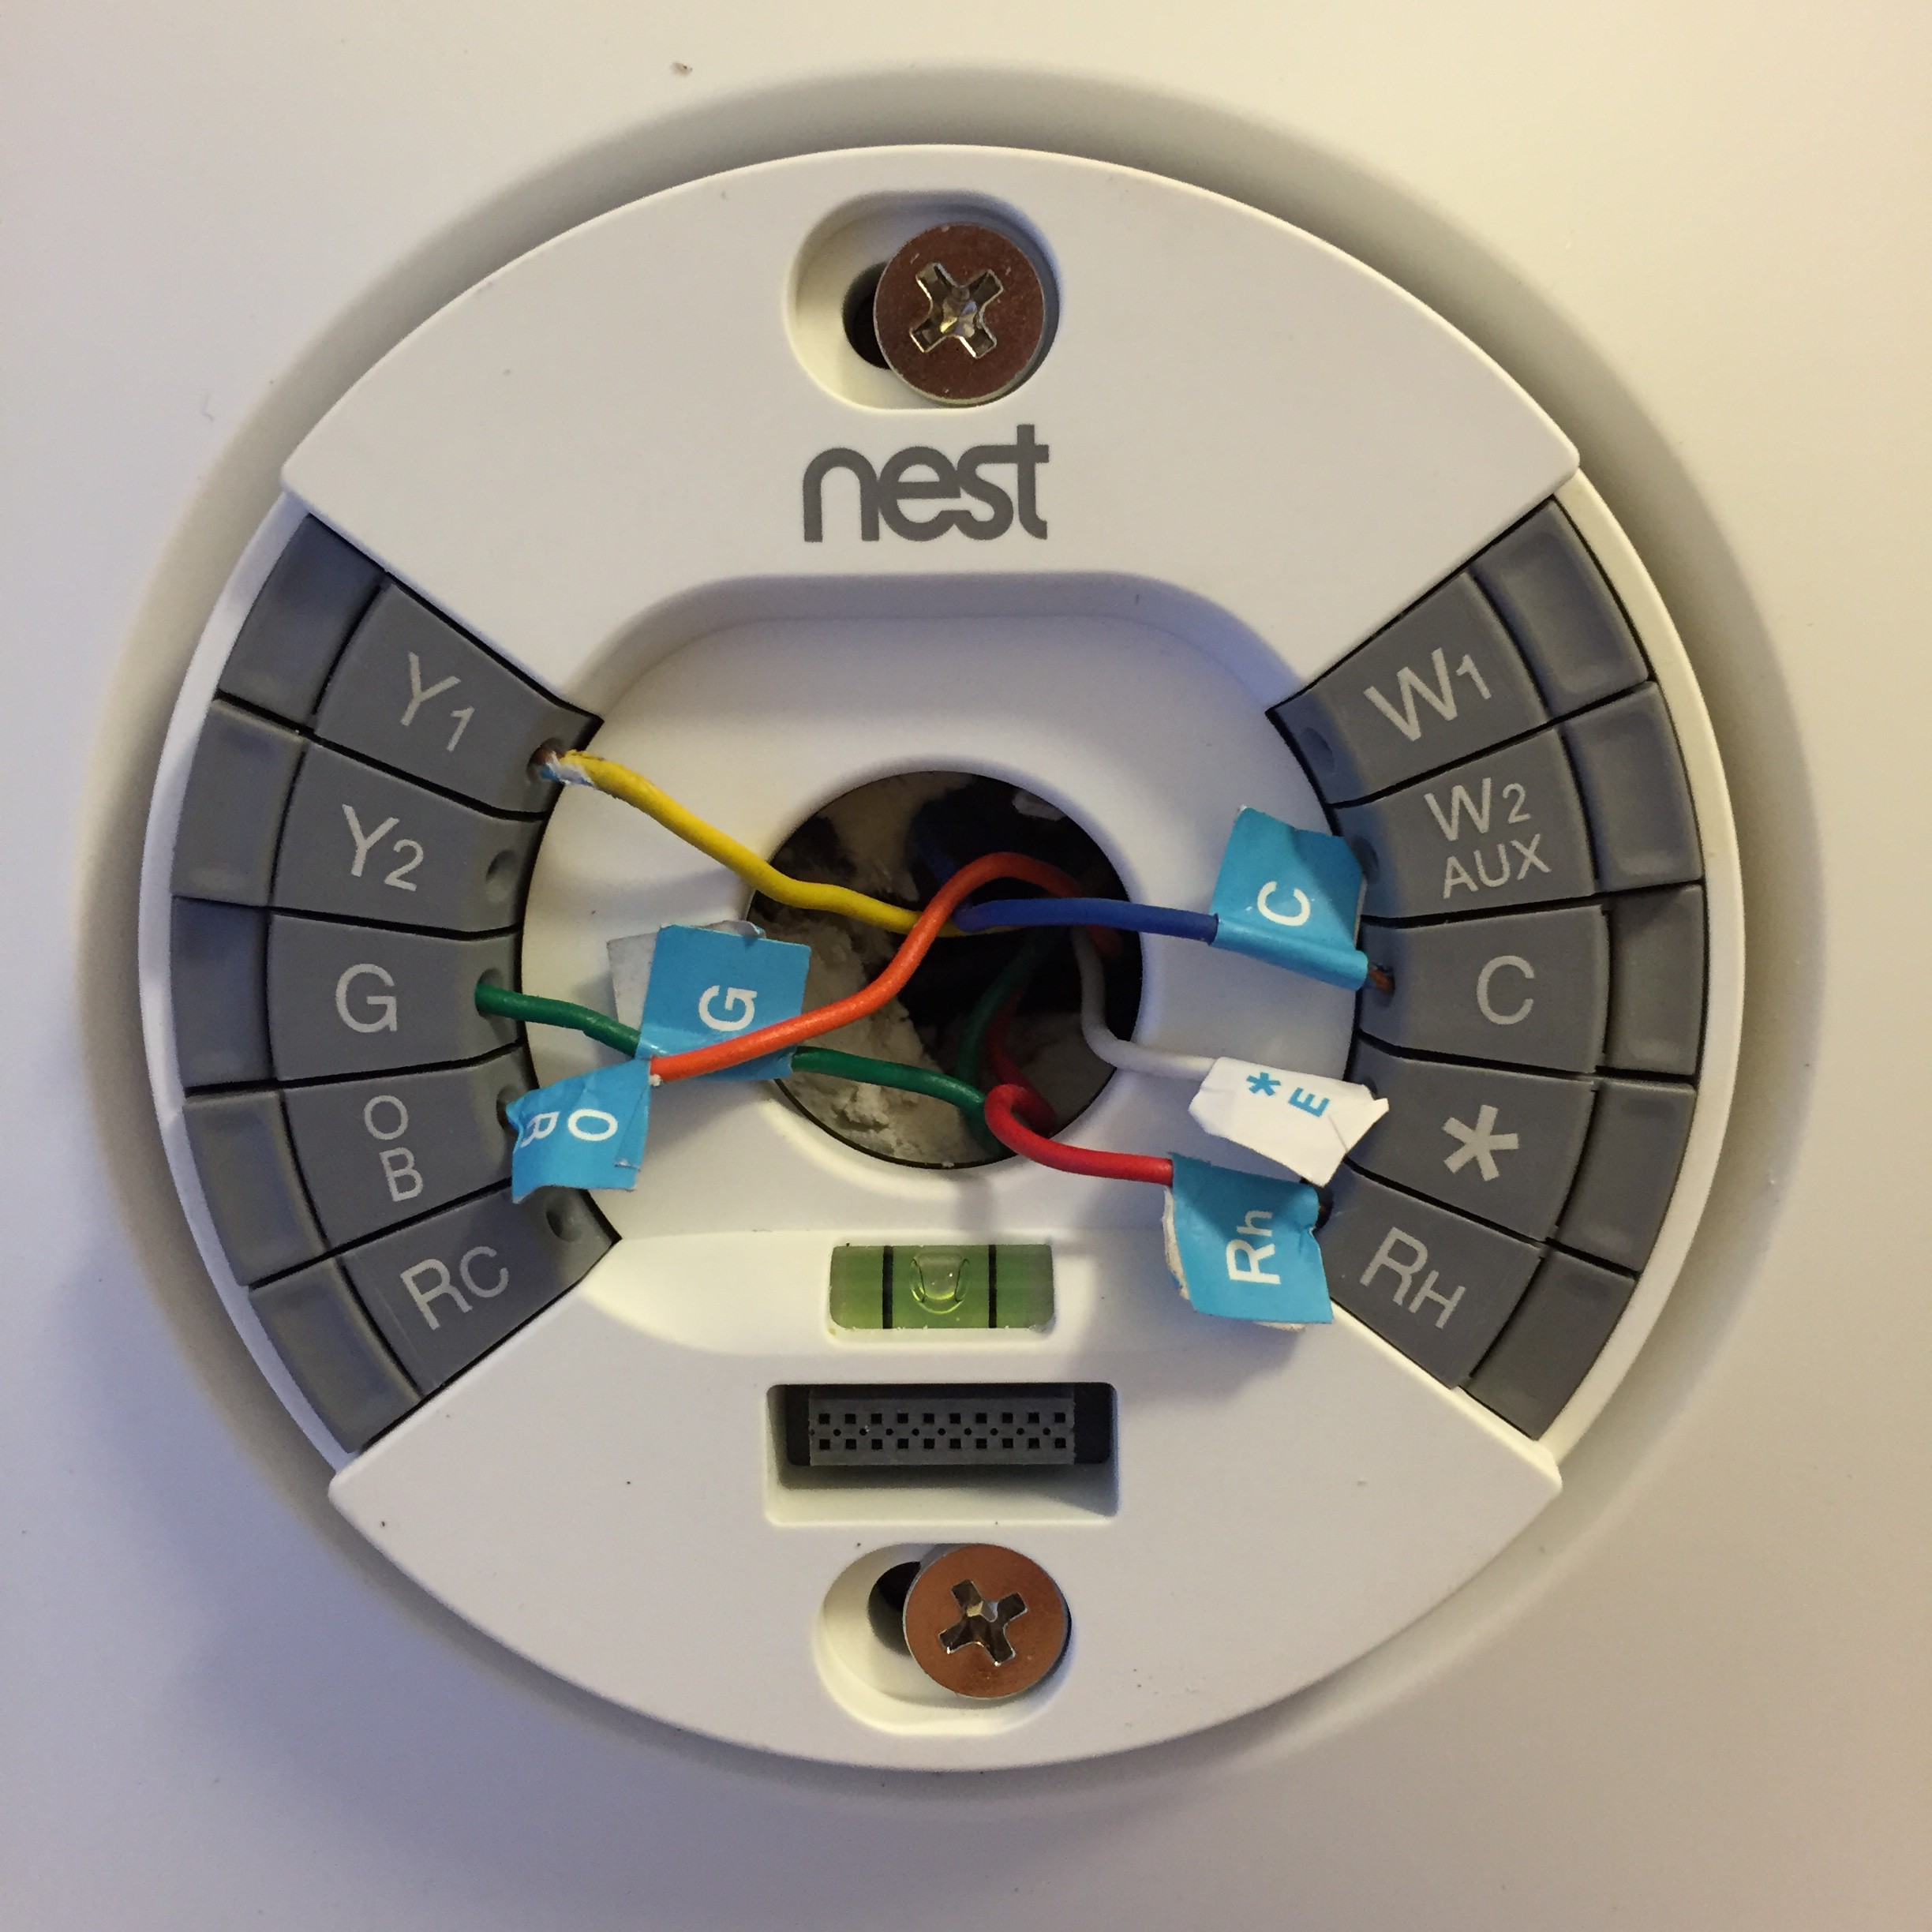 NEST Back Plate e1433878189266 the self learning nest thermostat comes to the sauser home! nest thermostat heat pump wiring diagram at bayanpartner.co